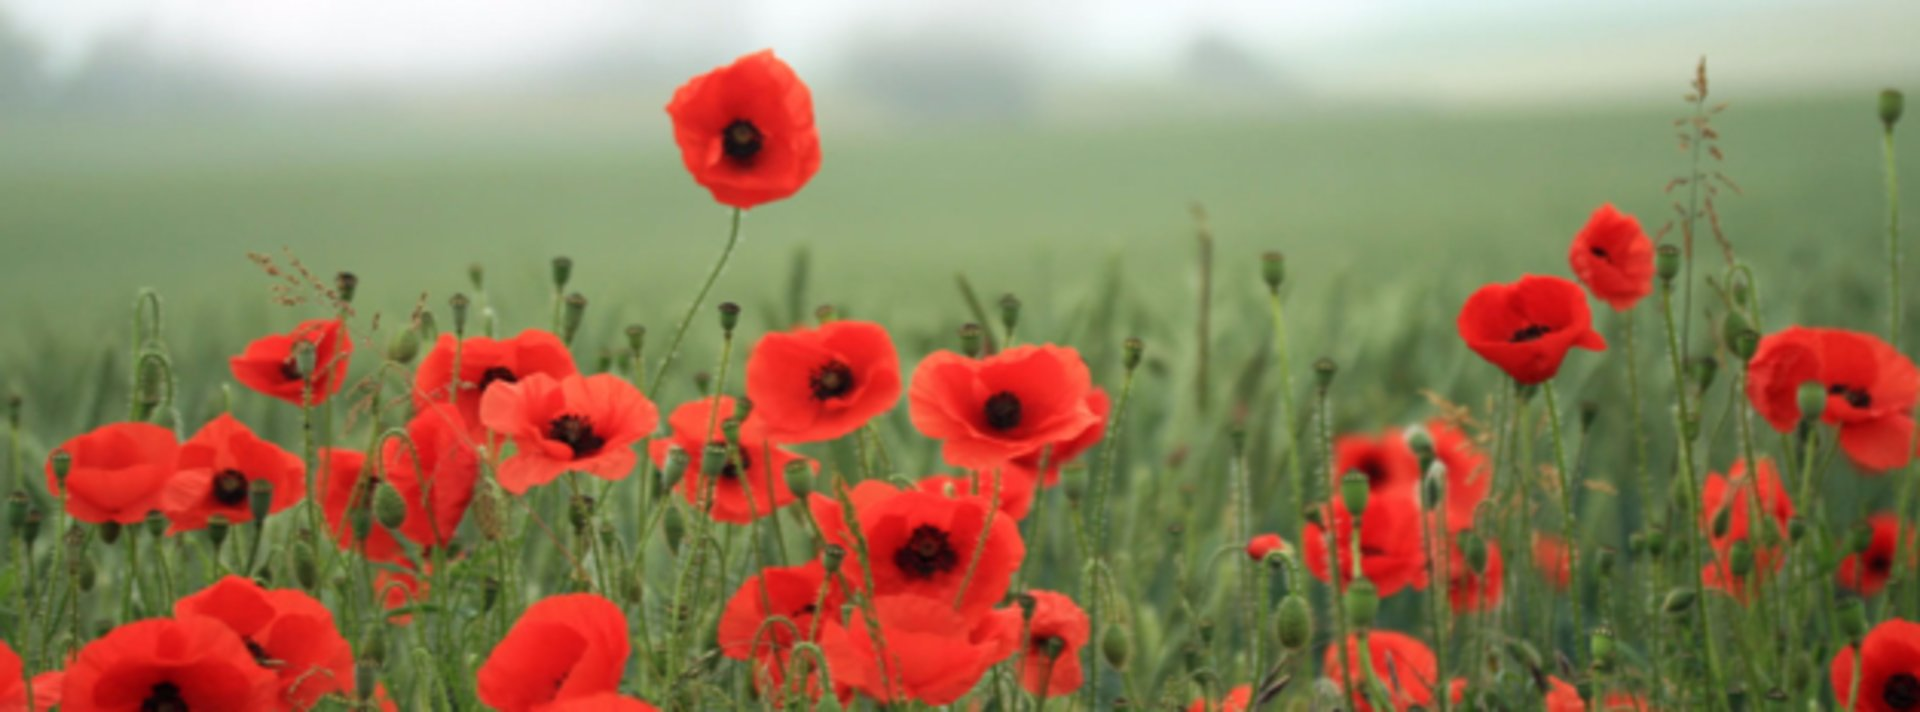 How Did The Poppy Become The Symbol Of Remembrance Day